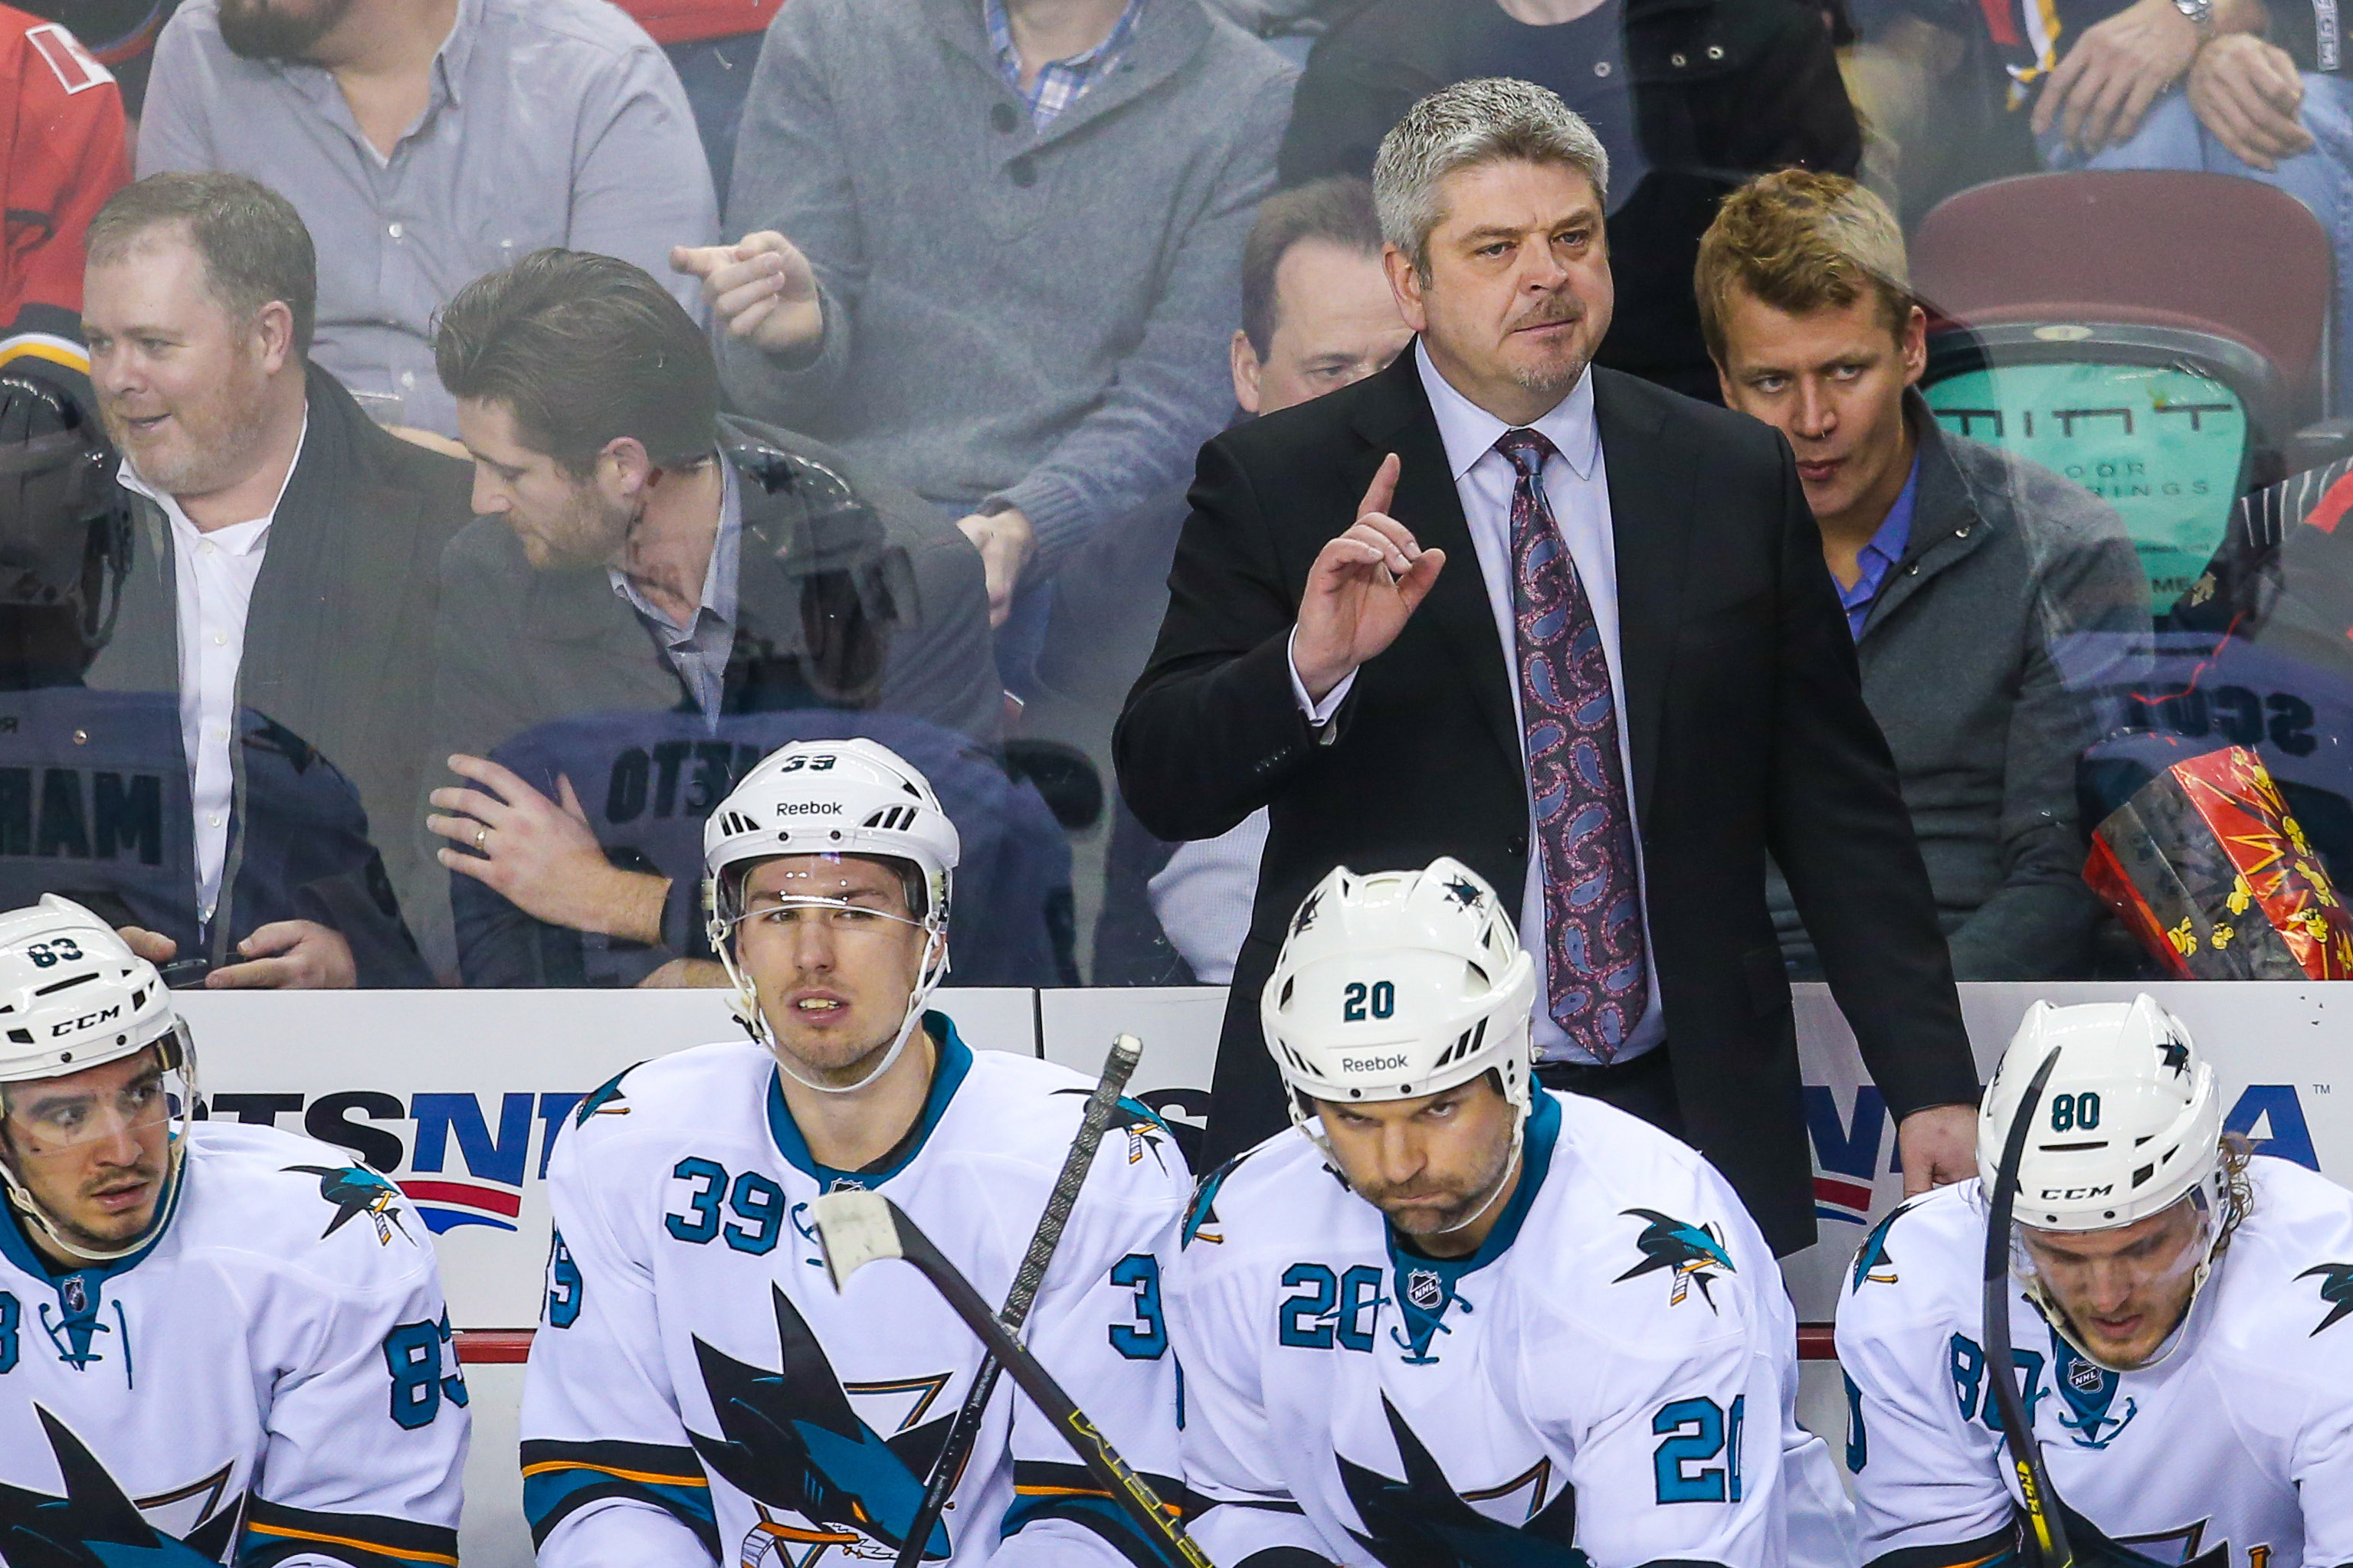 McLellan and the Oilers are openly flirting after his mutual breakup with the San Jose Sharks.